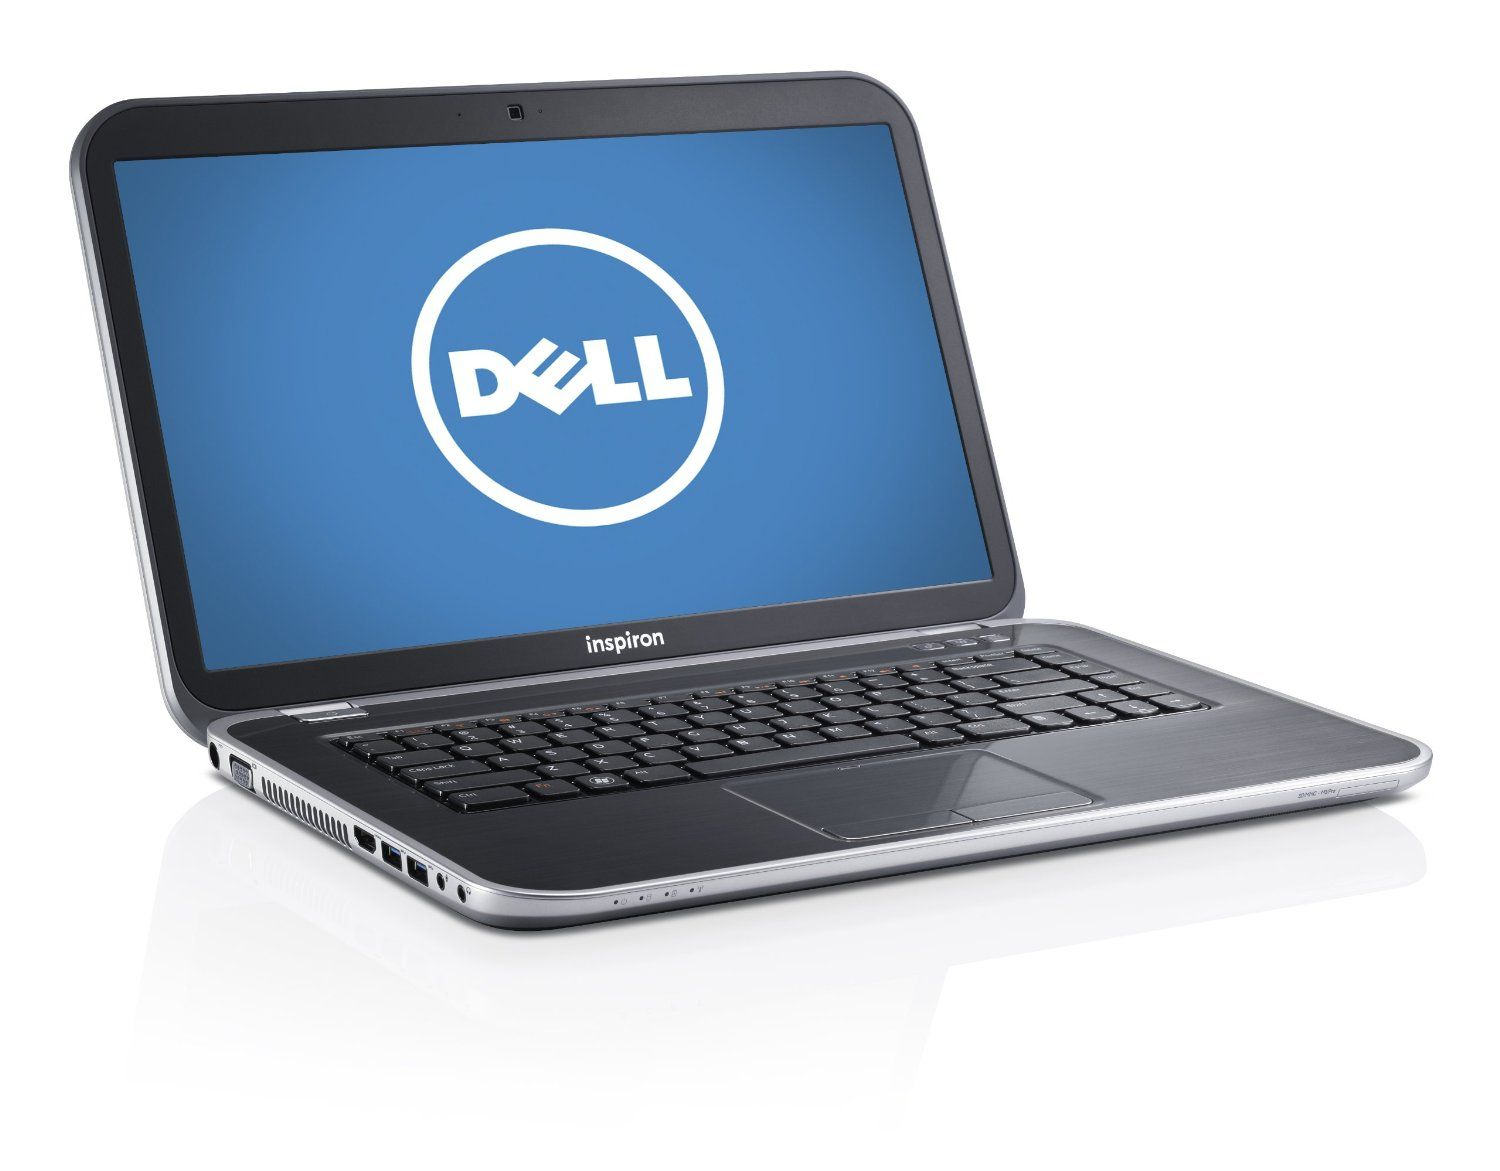 dell computers Protect your pc from virus, spam, spyware, and malware mcafee provides the latest antivirus software, spyware removal and internet security for your home or home office.